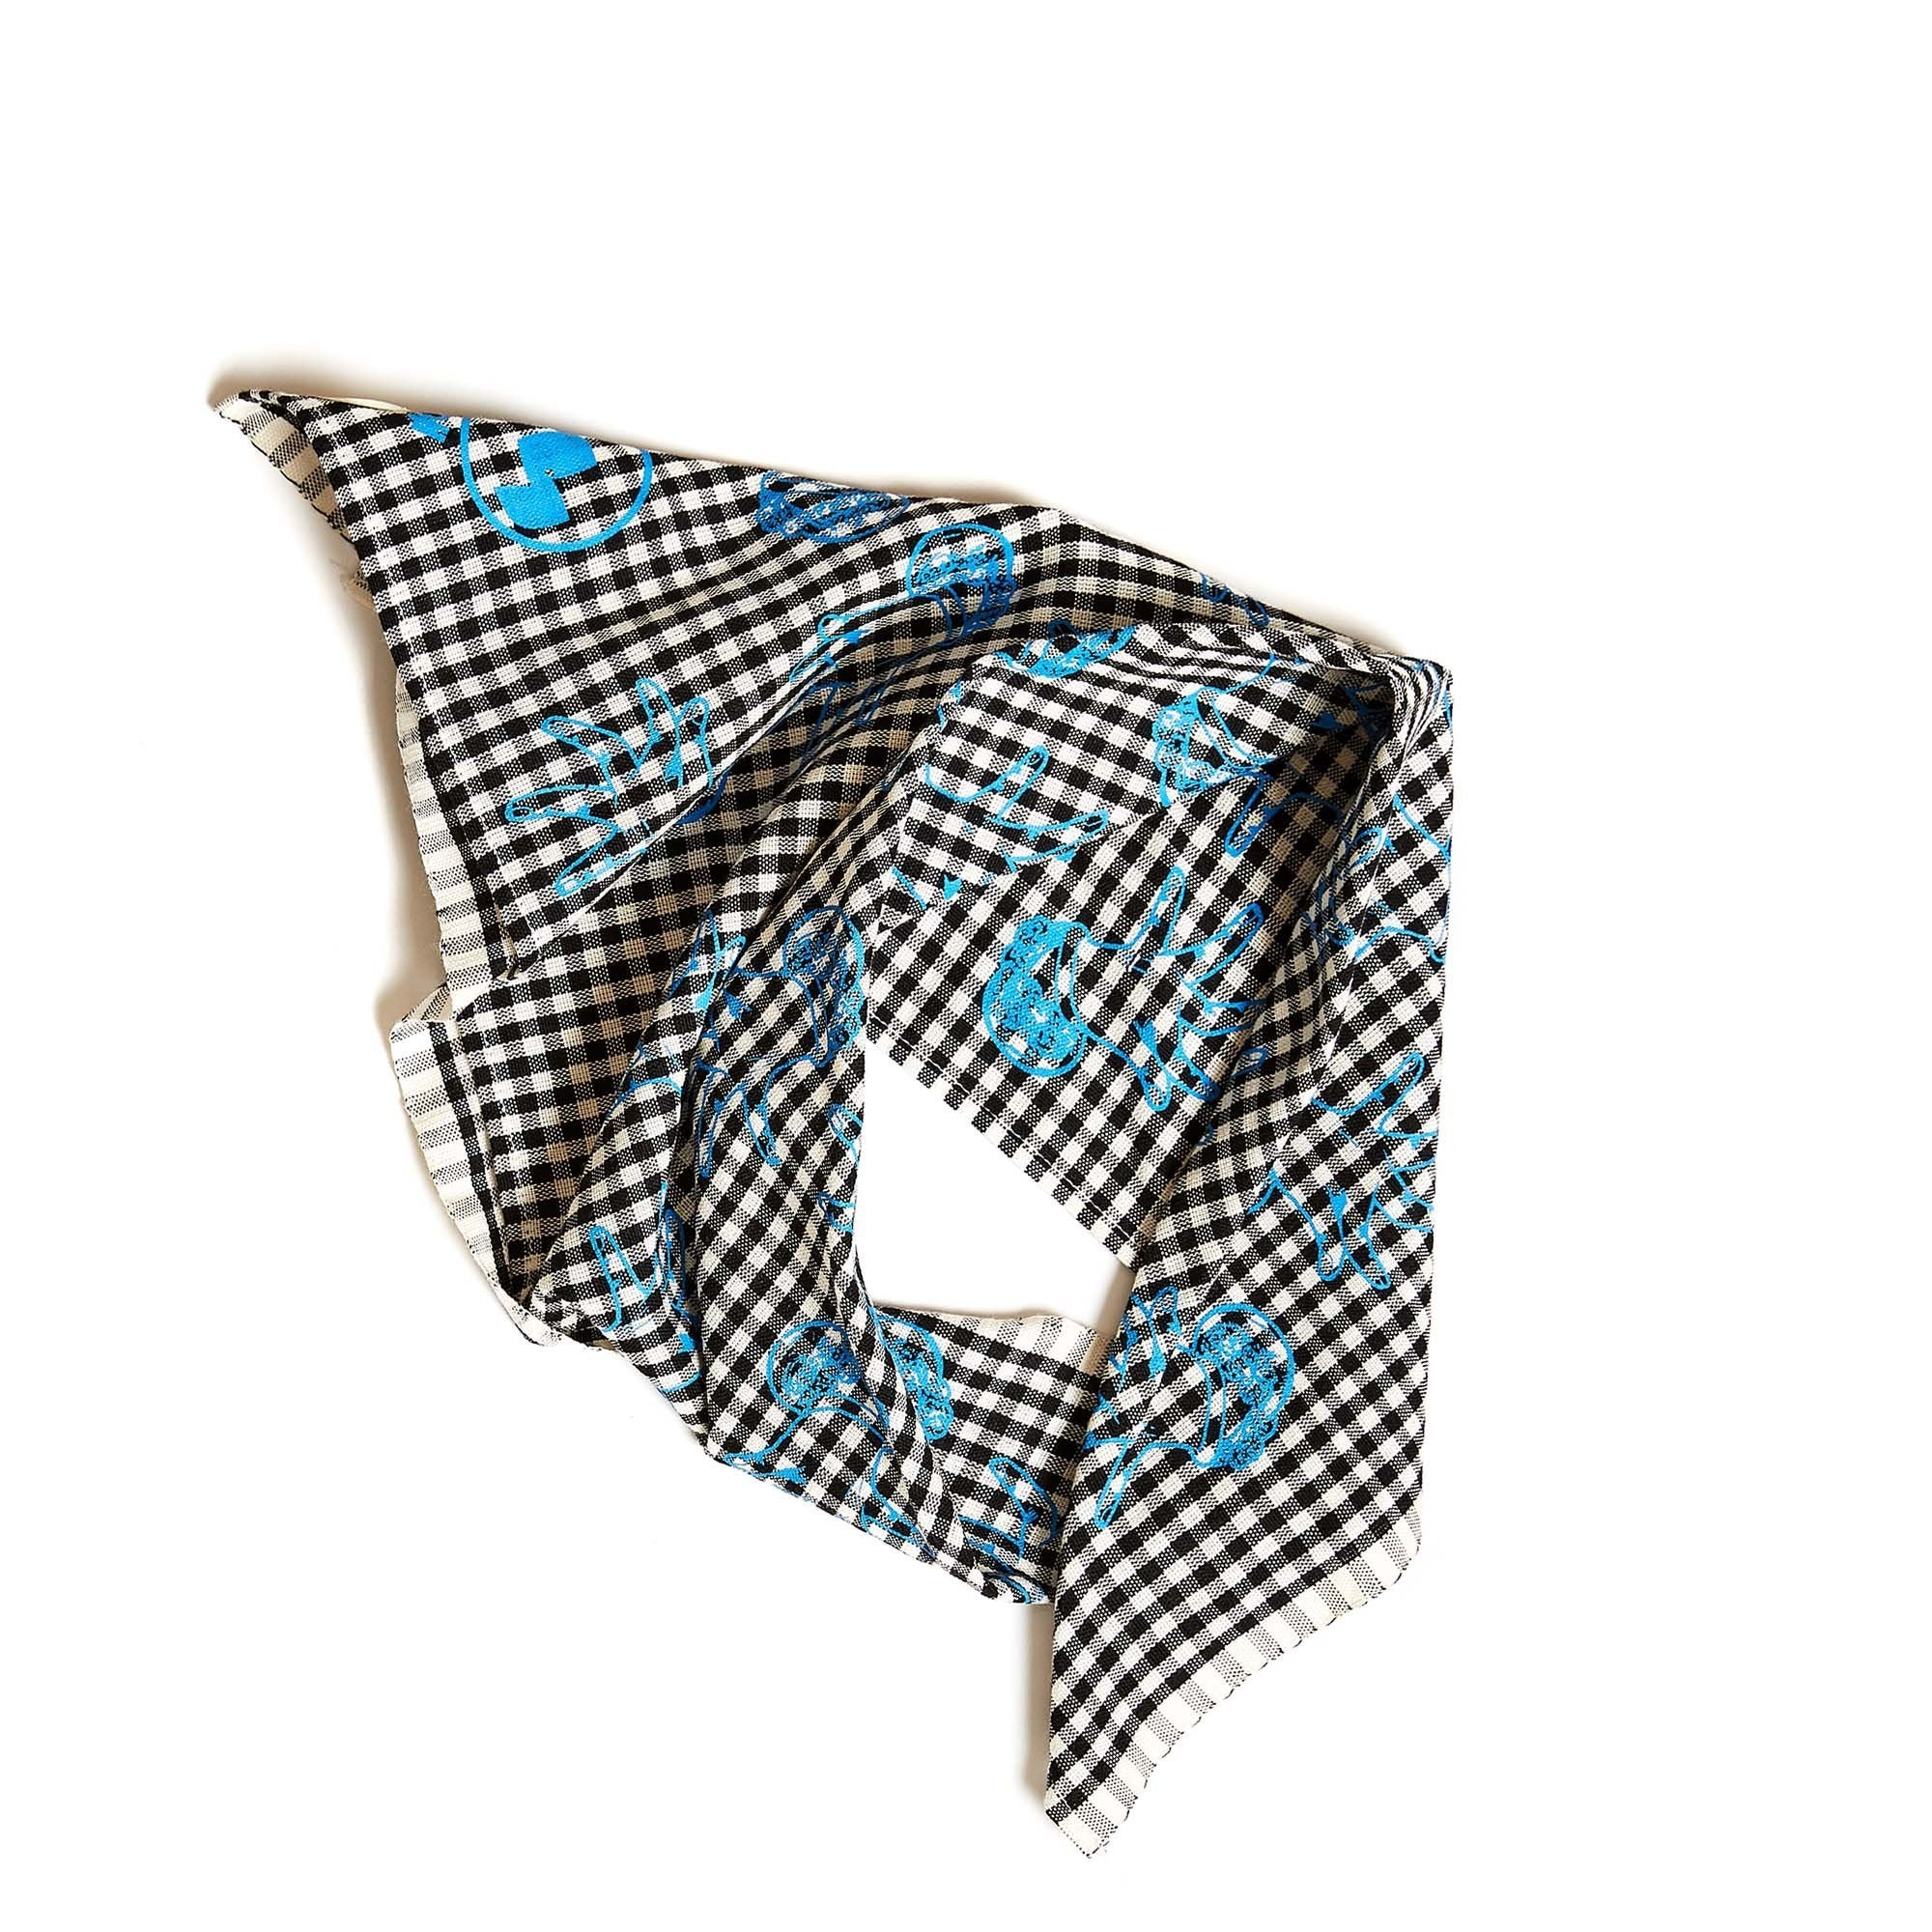 Krama Bandana in Small Checkered Flower